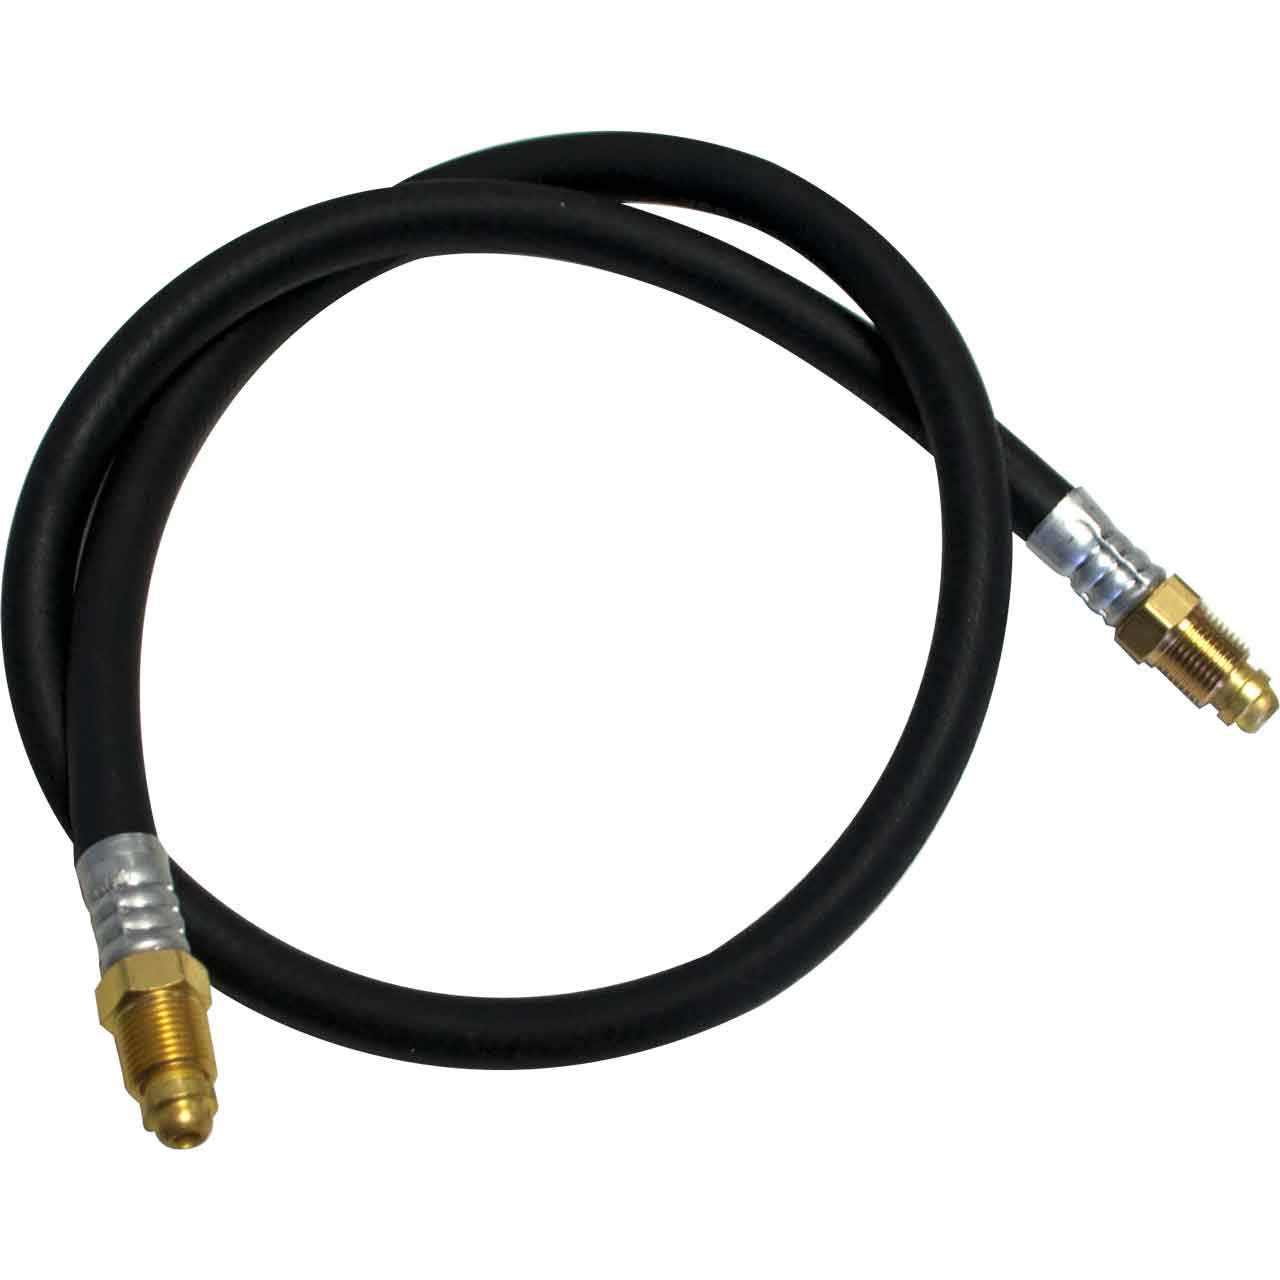 Weldtec 40V84R Power Cable 12.5 ft Rubber